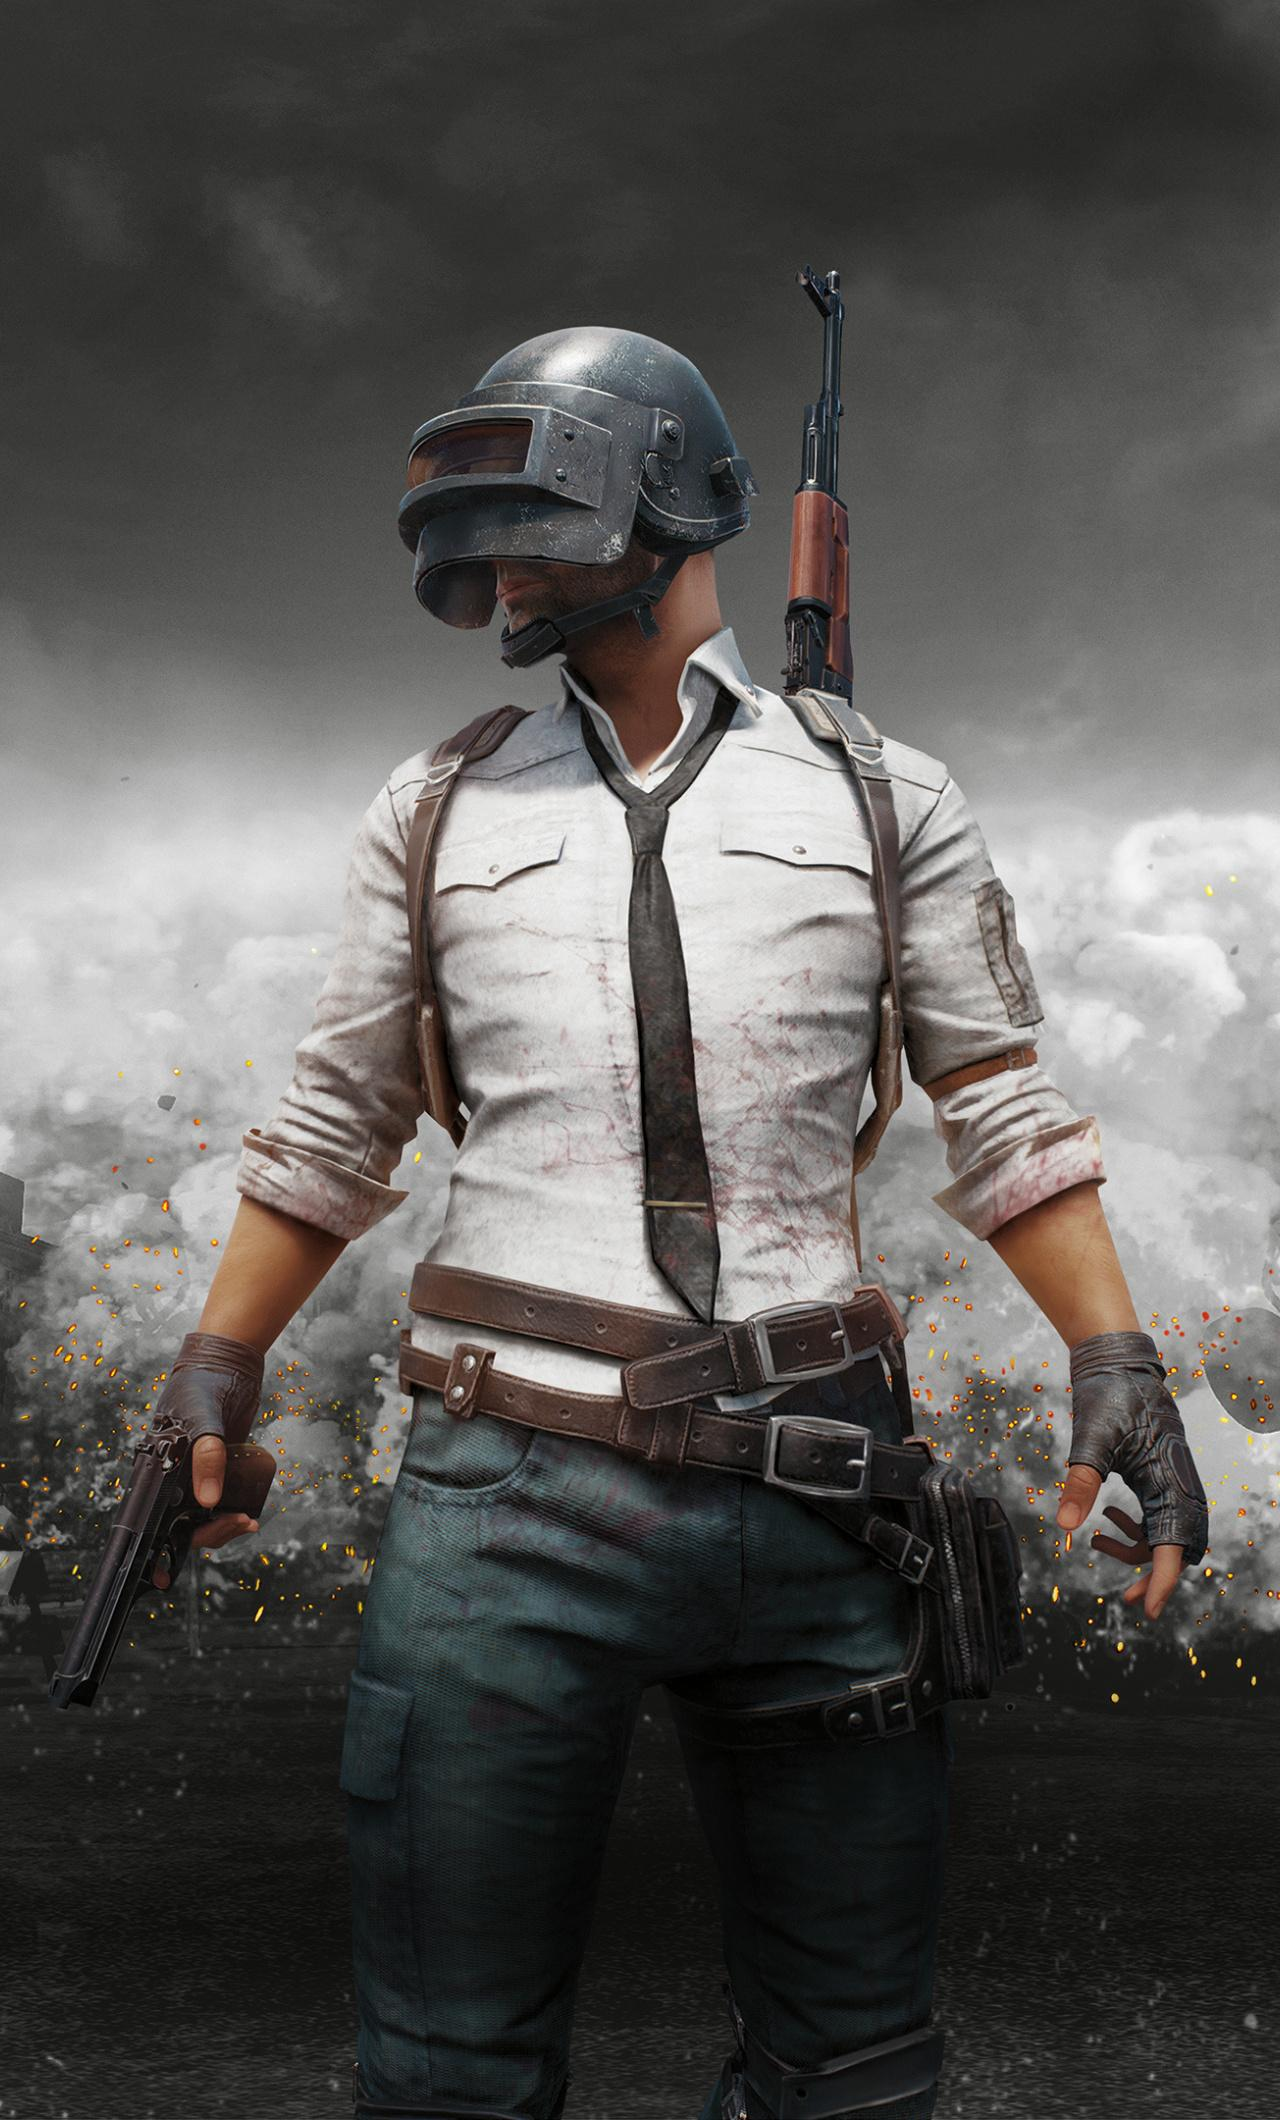 PUBG Mobile Character Hd Wallpapers - Wallpaper Cave